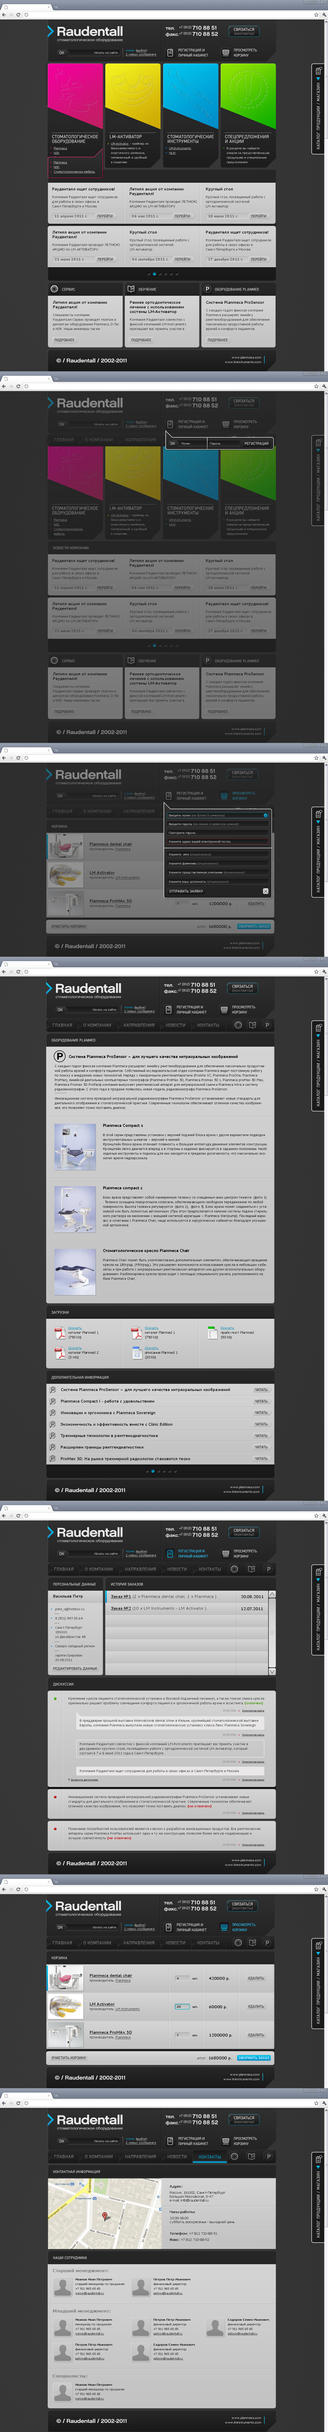 RDNT Interface B by ahillesus